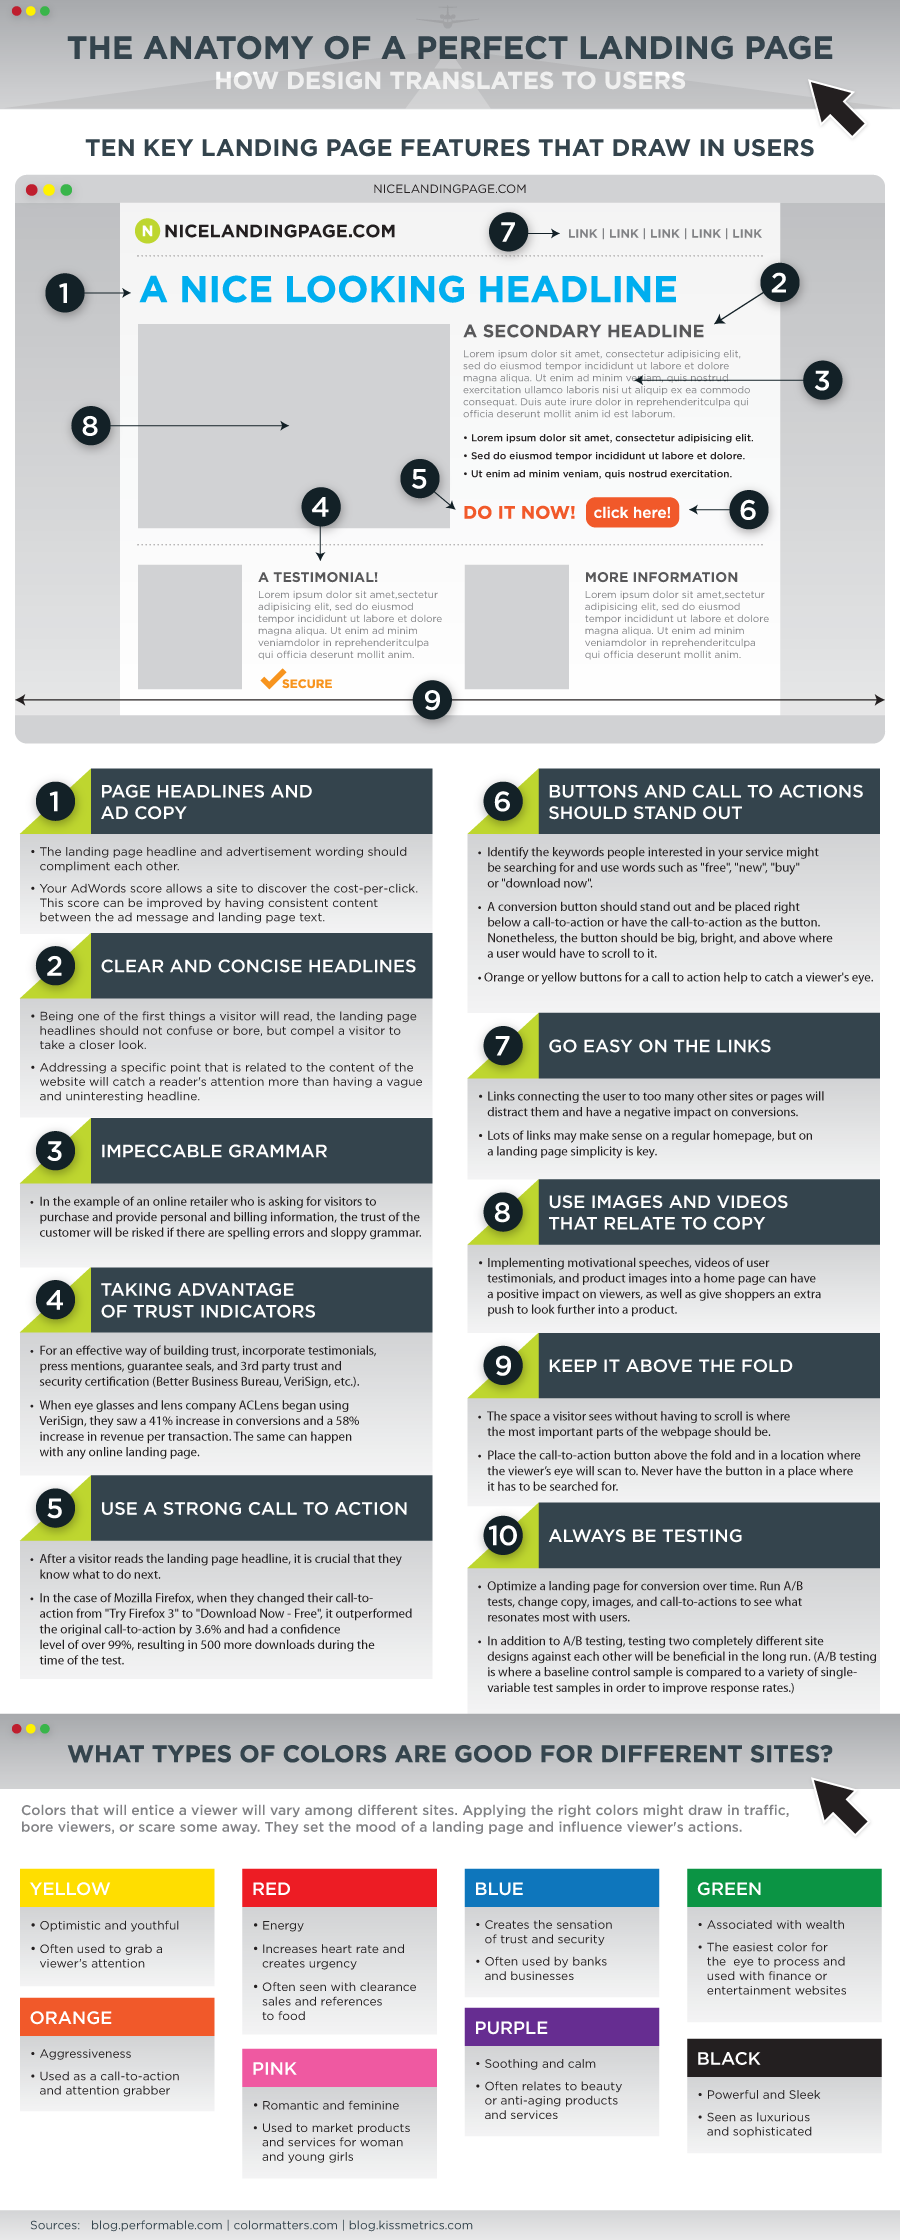 The anatomy of a perfect landing page - landing page optimization best practices